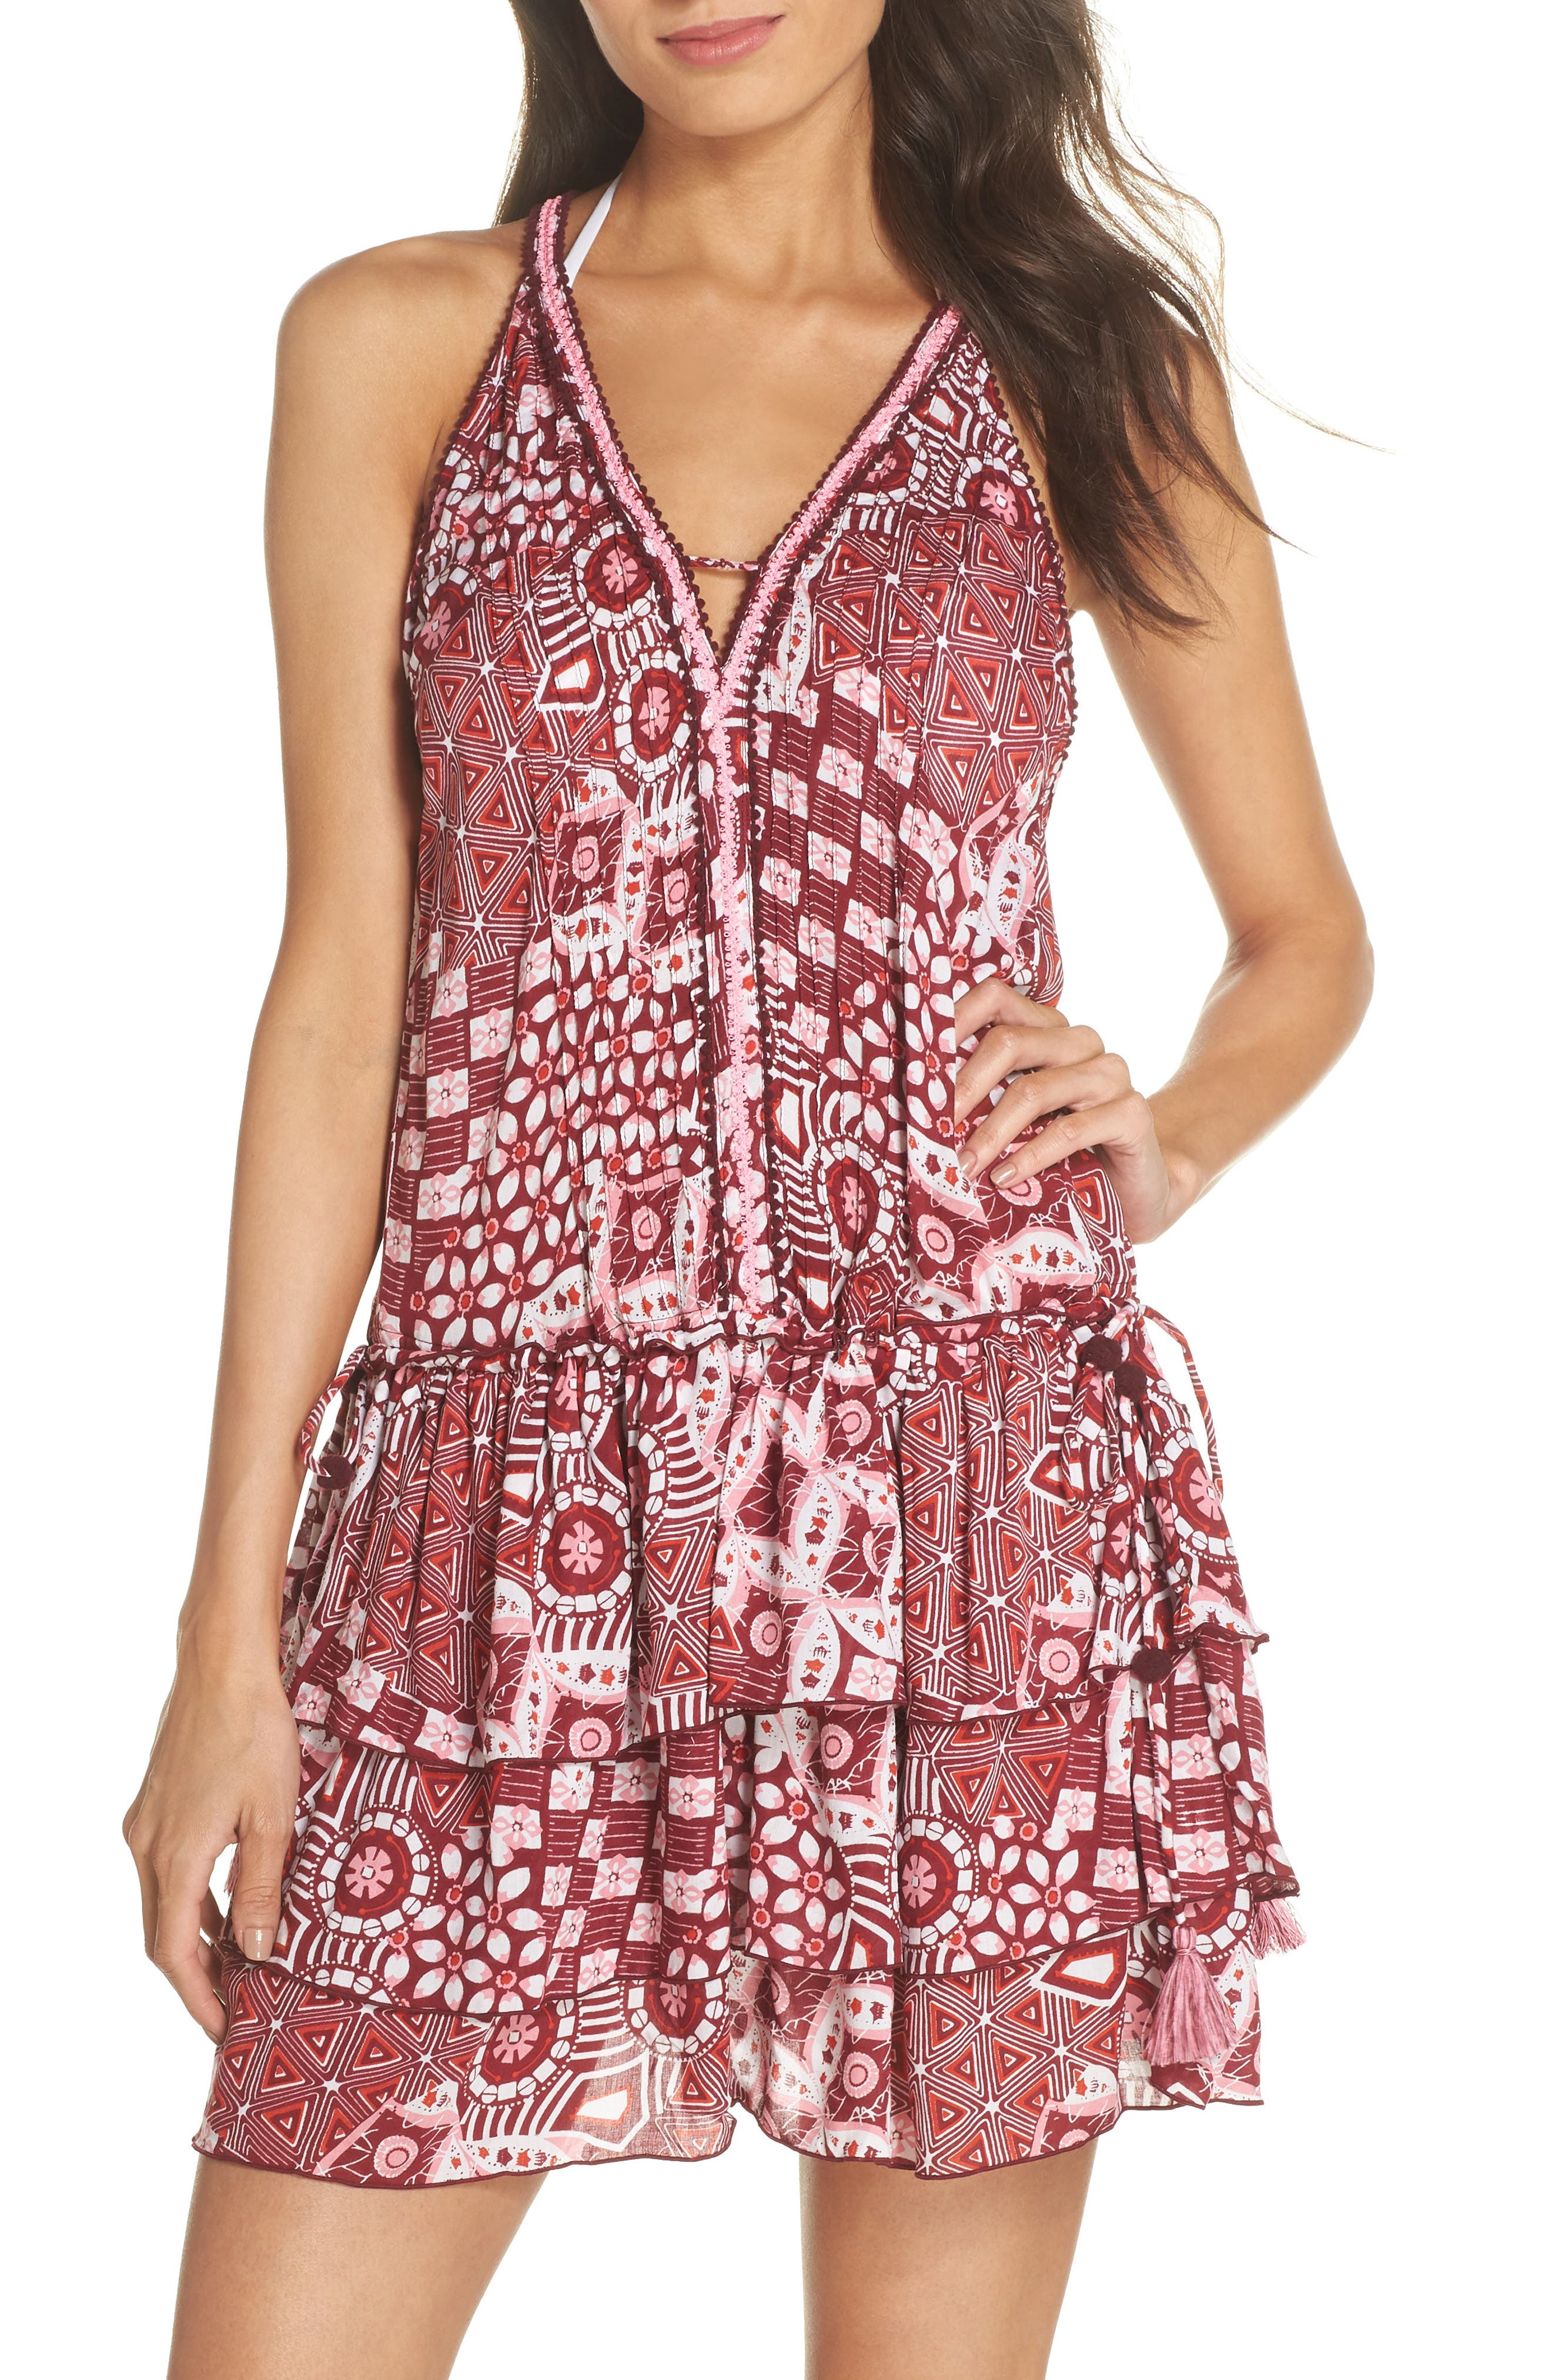 Poupette St. Barth Bety Cover-Up Minidress,                             Main thumbnail 1, color,                             650